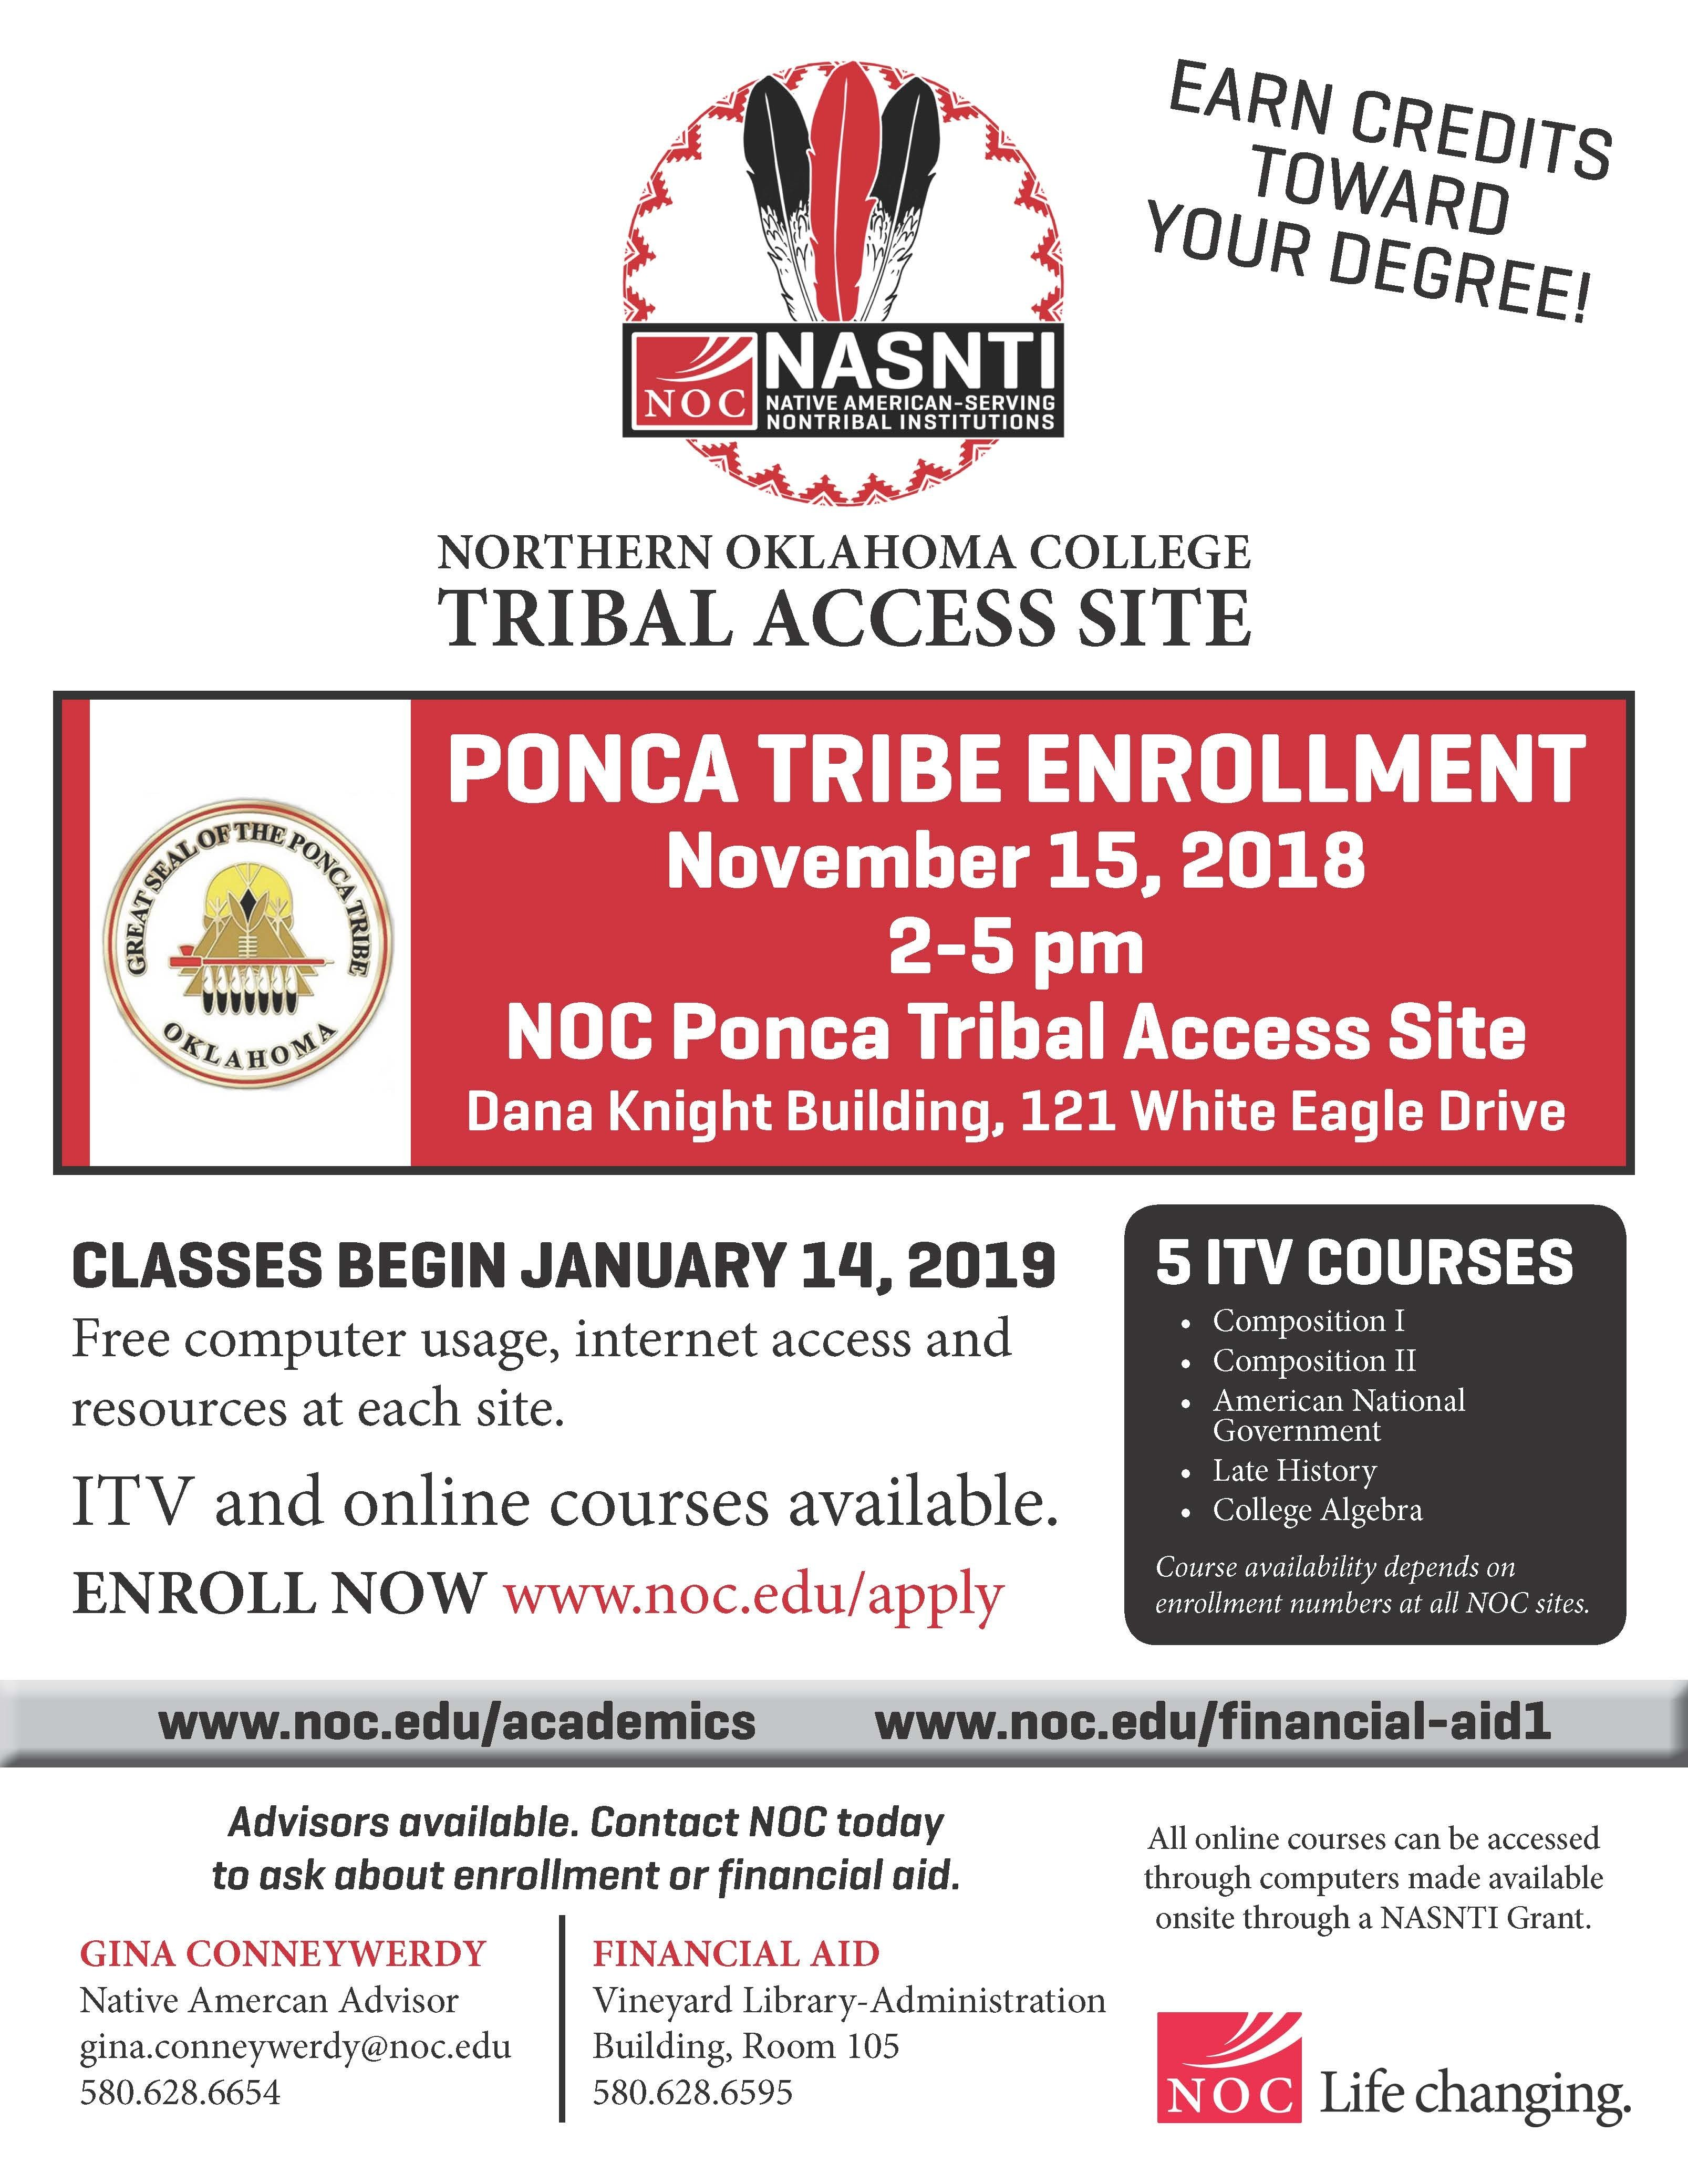 Enrollment with the Ponca Tribal Access Site NOC begins soon!